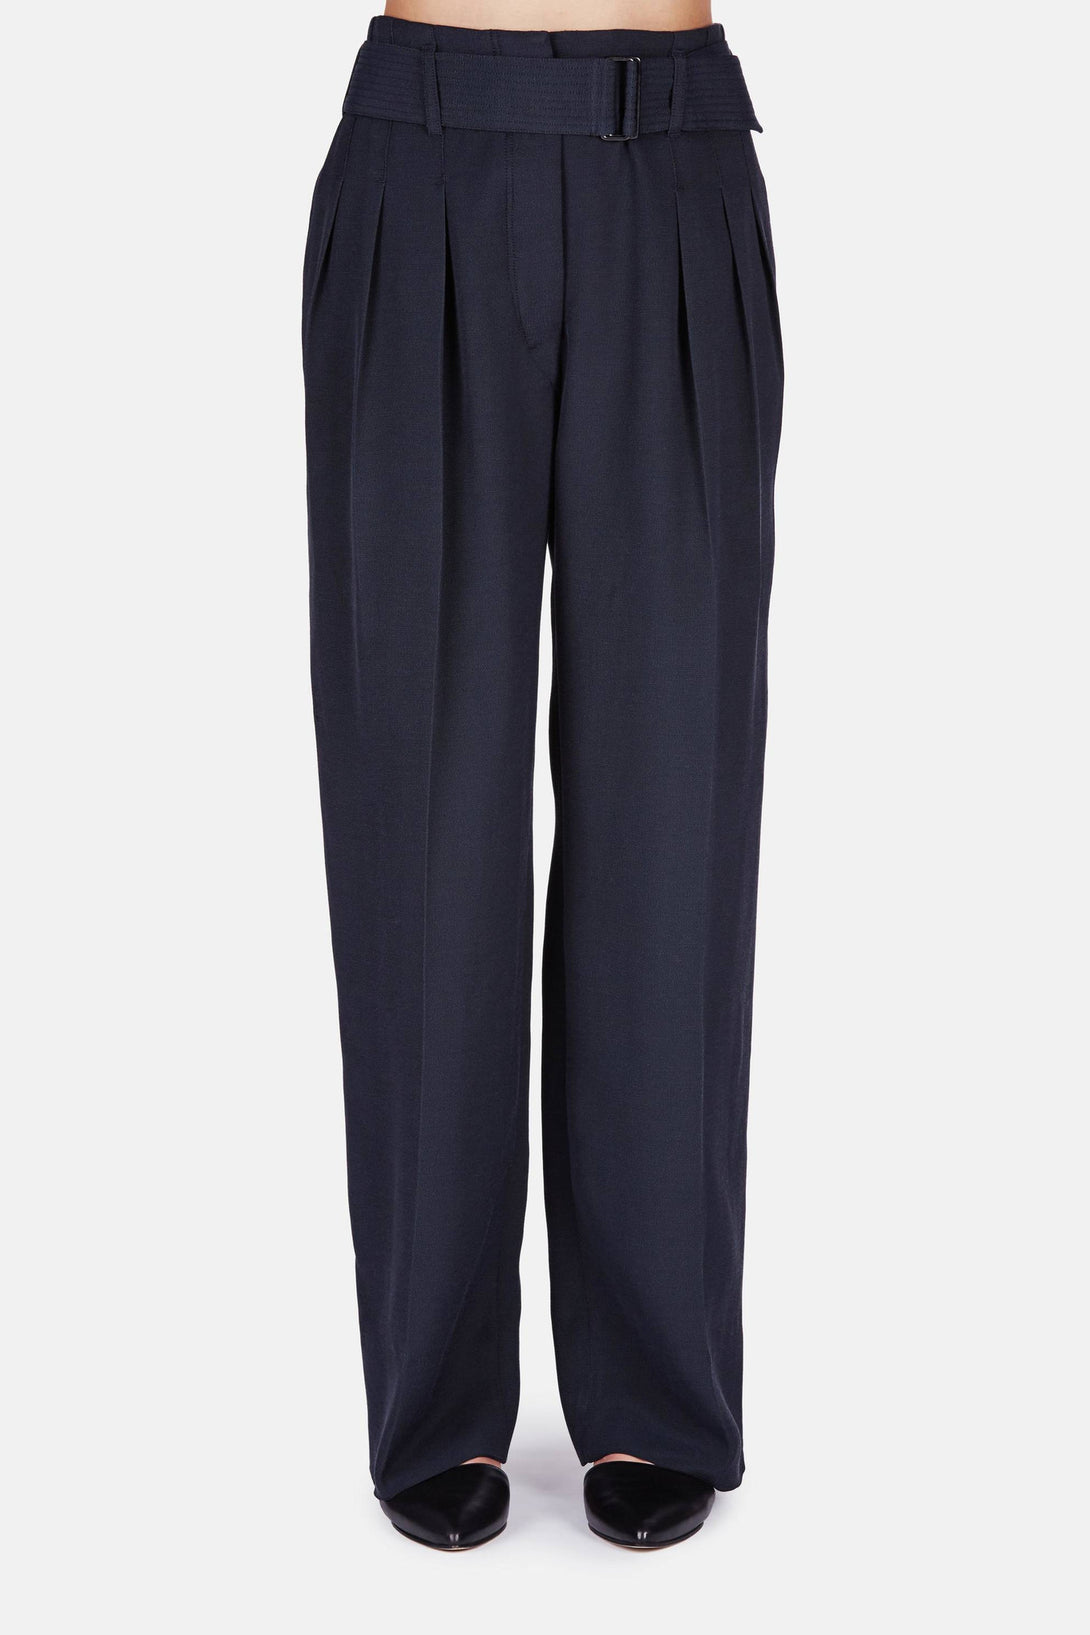 Three Pleated Pants - Midnight Blue